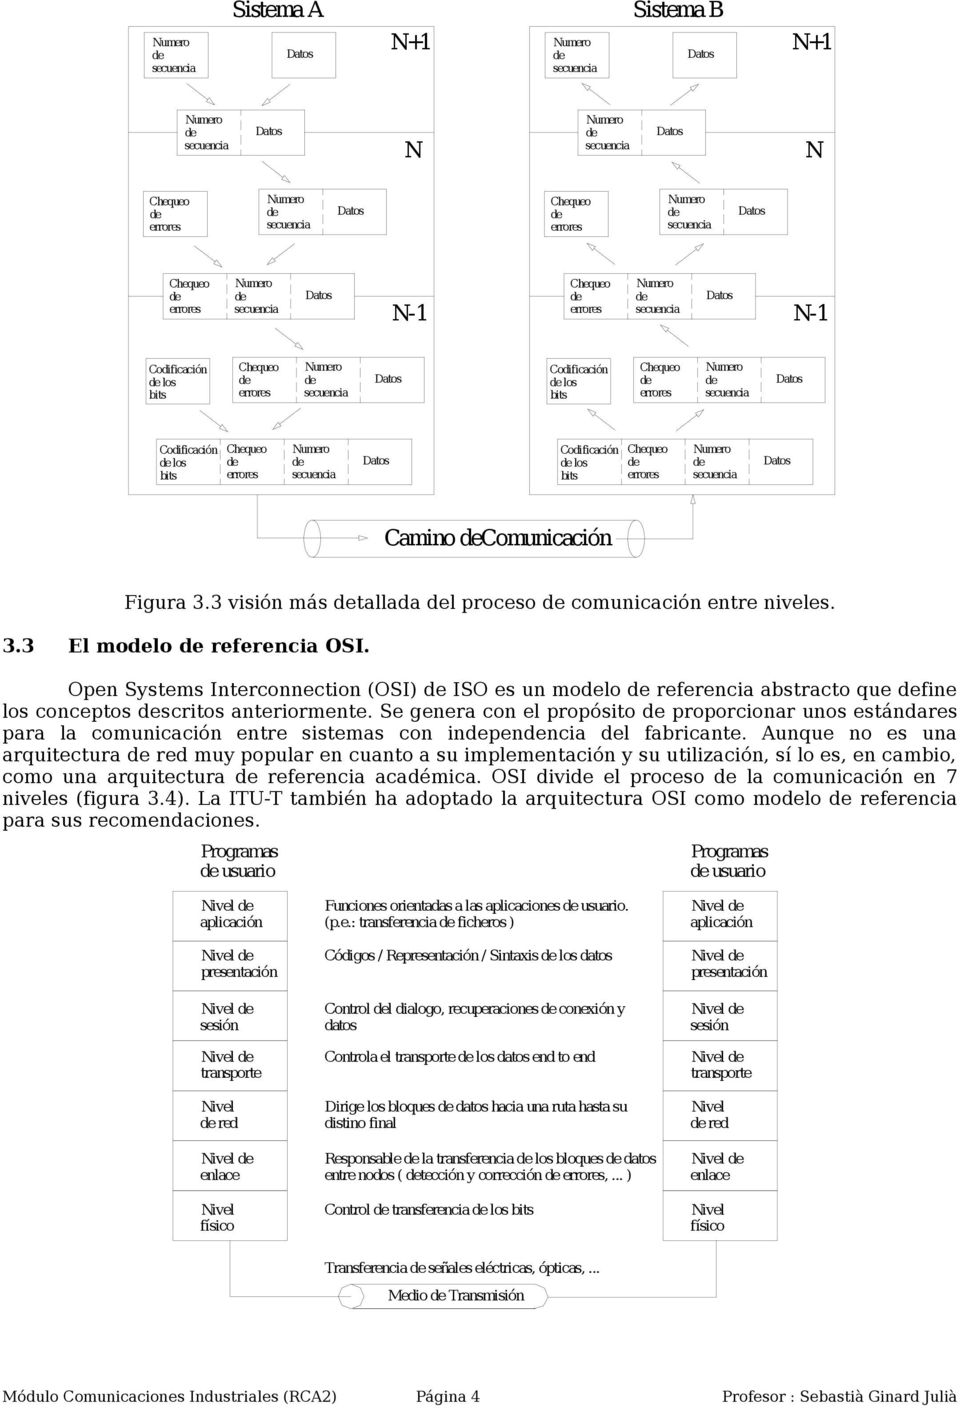 Open Systems Interconnection (OSI) ISO es un molo referencia abstracto que fine los conceptos scritos anteriormente.